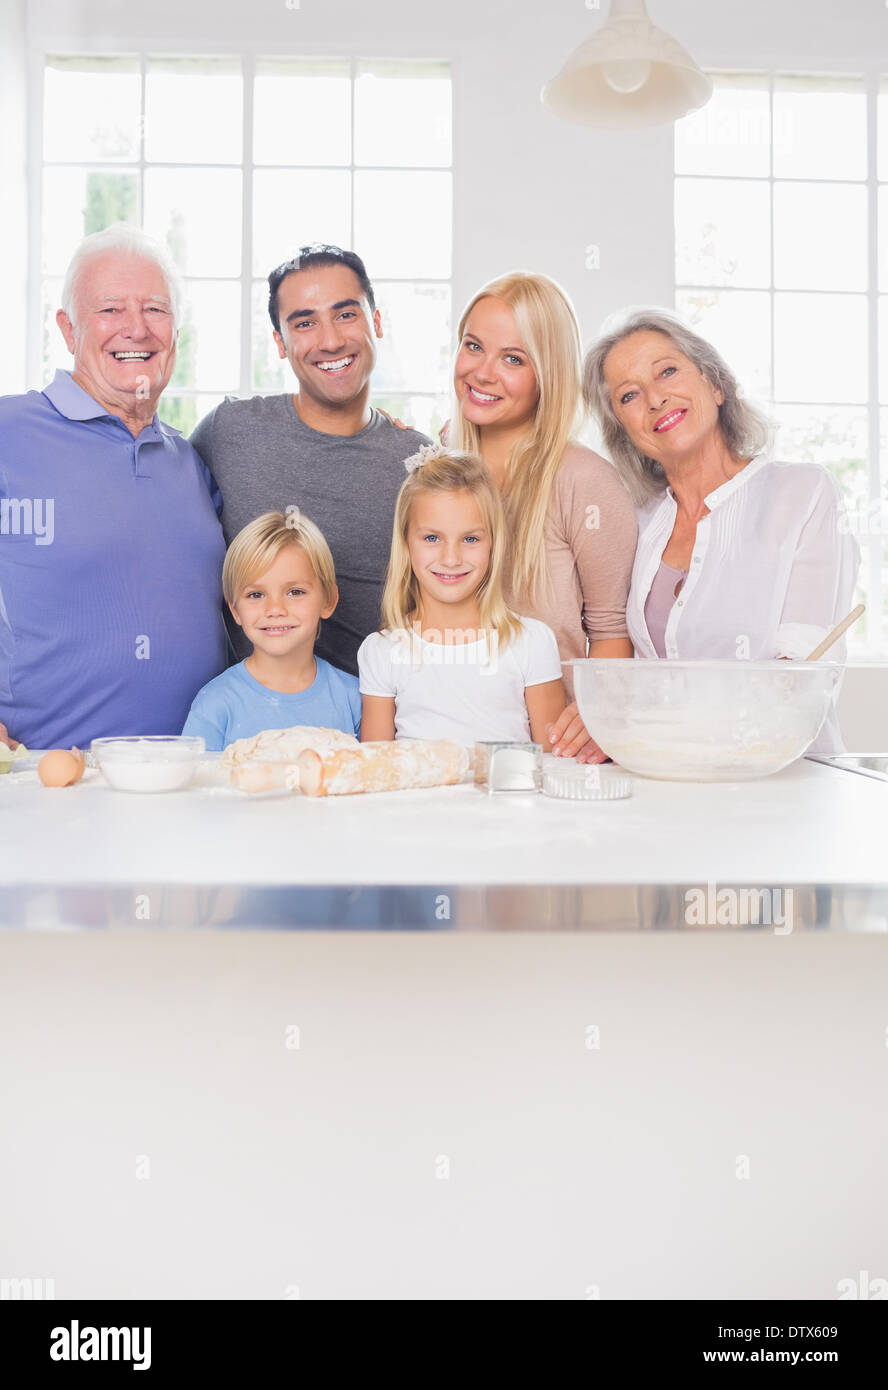 Smiling family posing in the kitchen Stock Photo